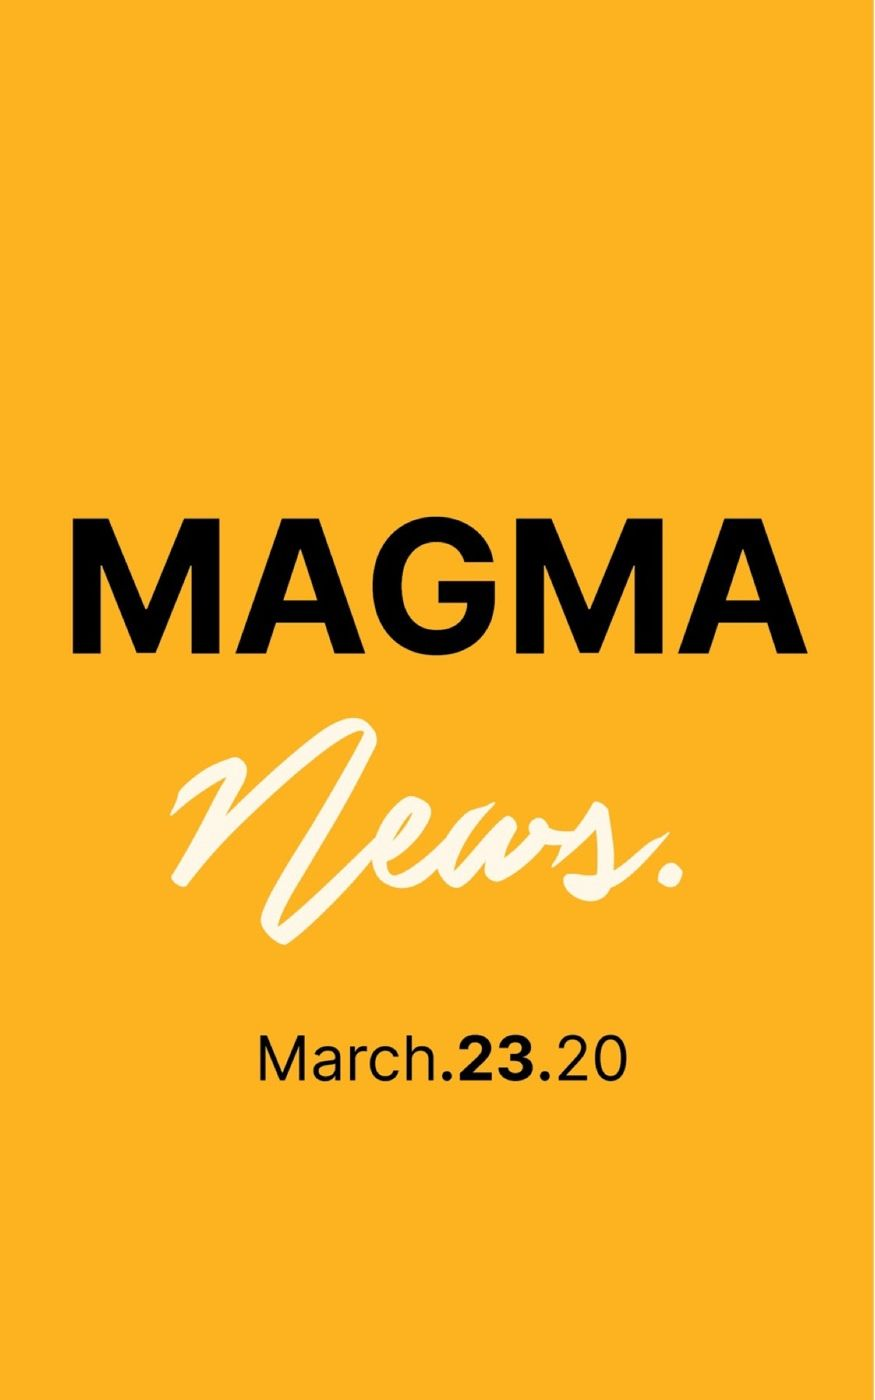 Magma News | March 23, 2020 -The Virus Can Be Stopped, but Only With Harsh Steps, Experts Say. -Coronavirus: WHO Head Says Nations Must Attack As 'Pandemic Is Accelerating'. -U.S. Olympic Committee says poll shows postponing Olympics is best path. -Amazon fights coronavirus price-gouging, suspends 3,900 accounts. -Stunning NASA image shows center of Milky Way. Check back every Monday, Wednesday & Friday